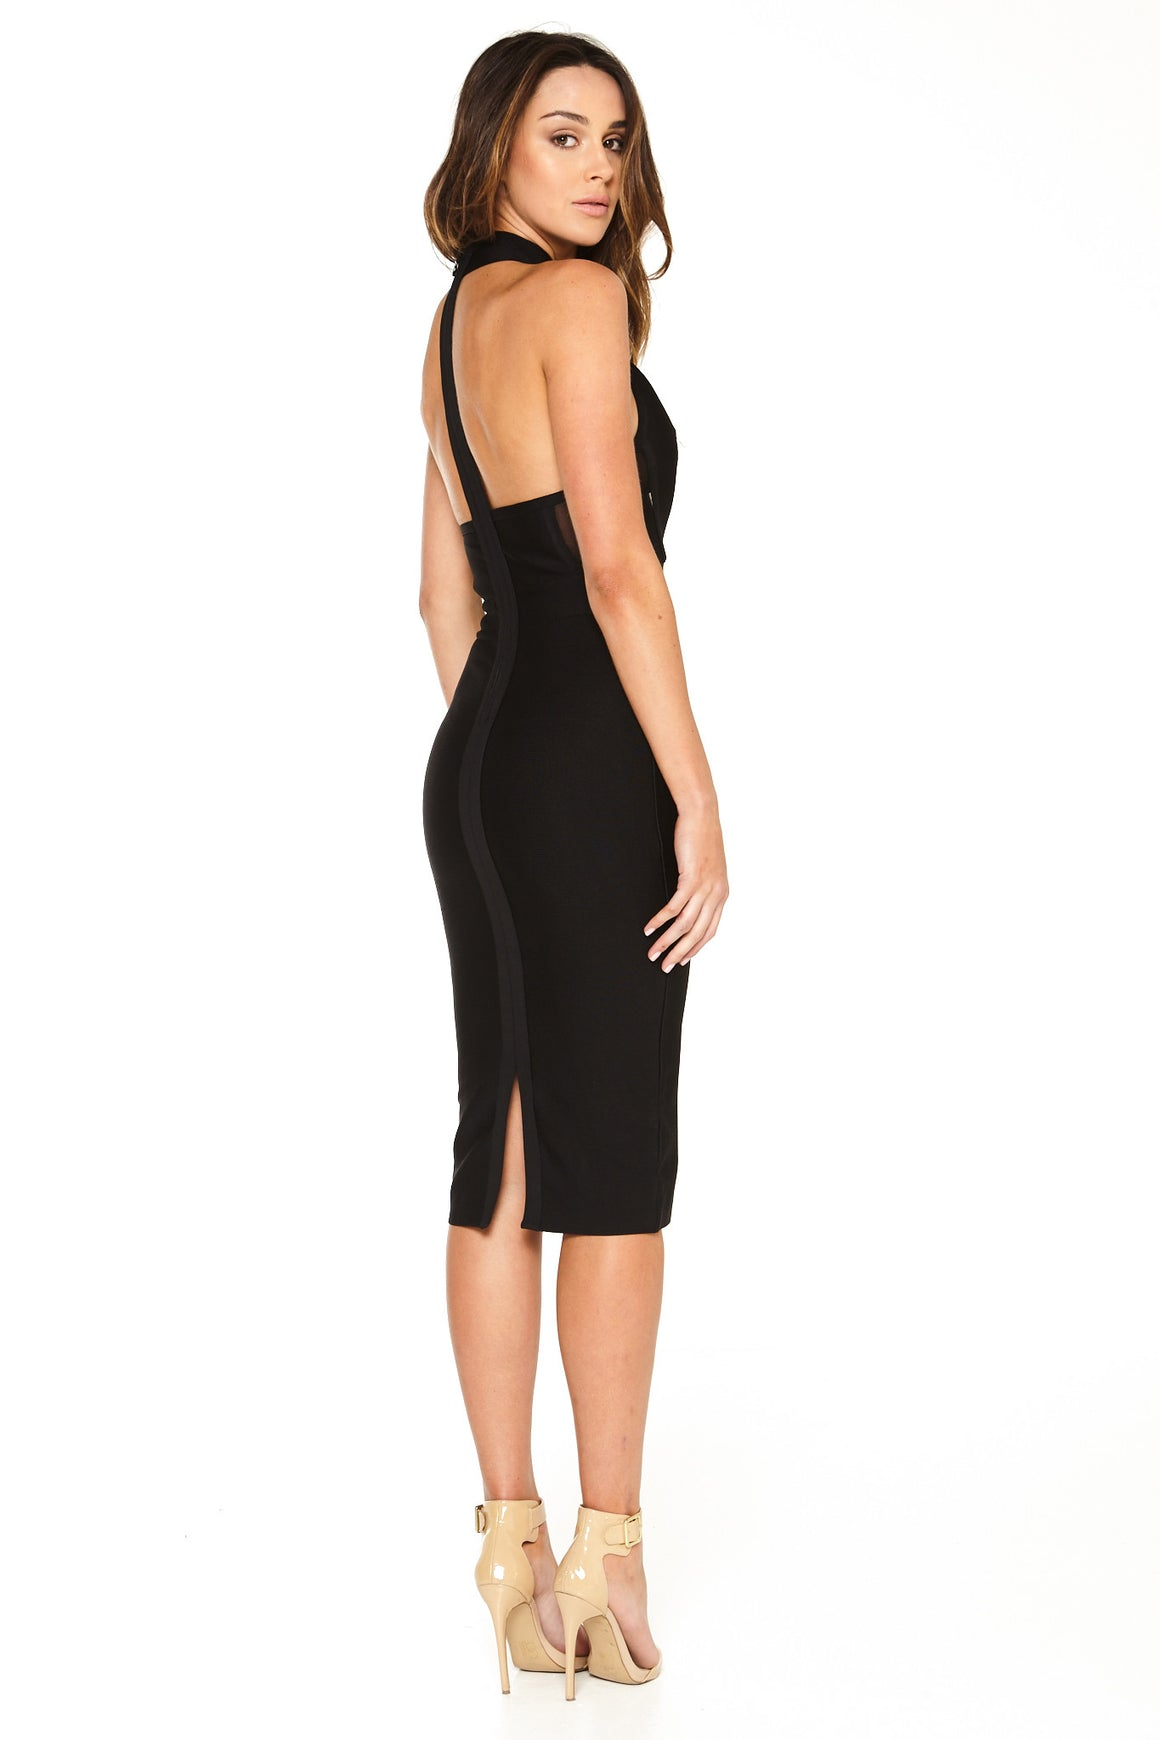 Cora Keyhole Bandage Dress - Black [SAMPLE SALE]